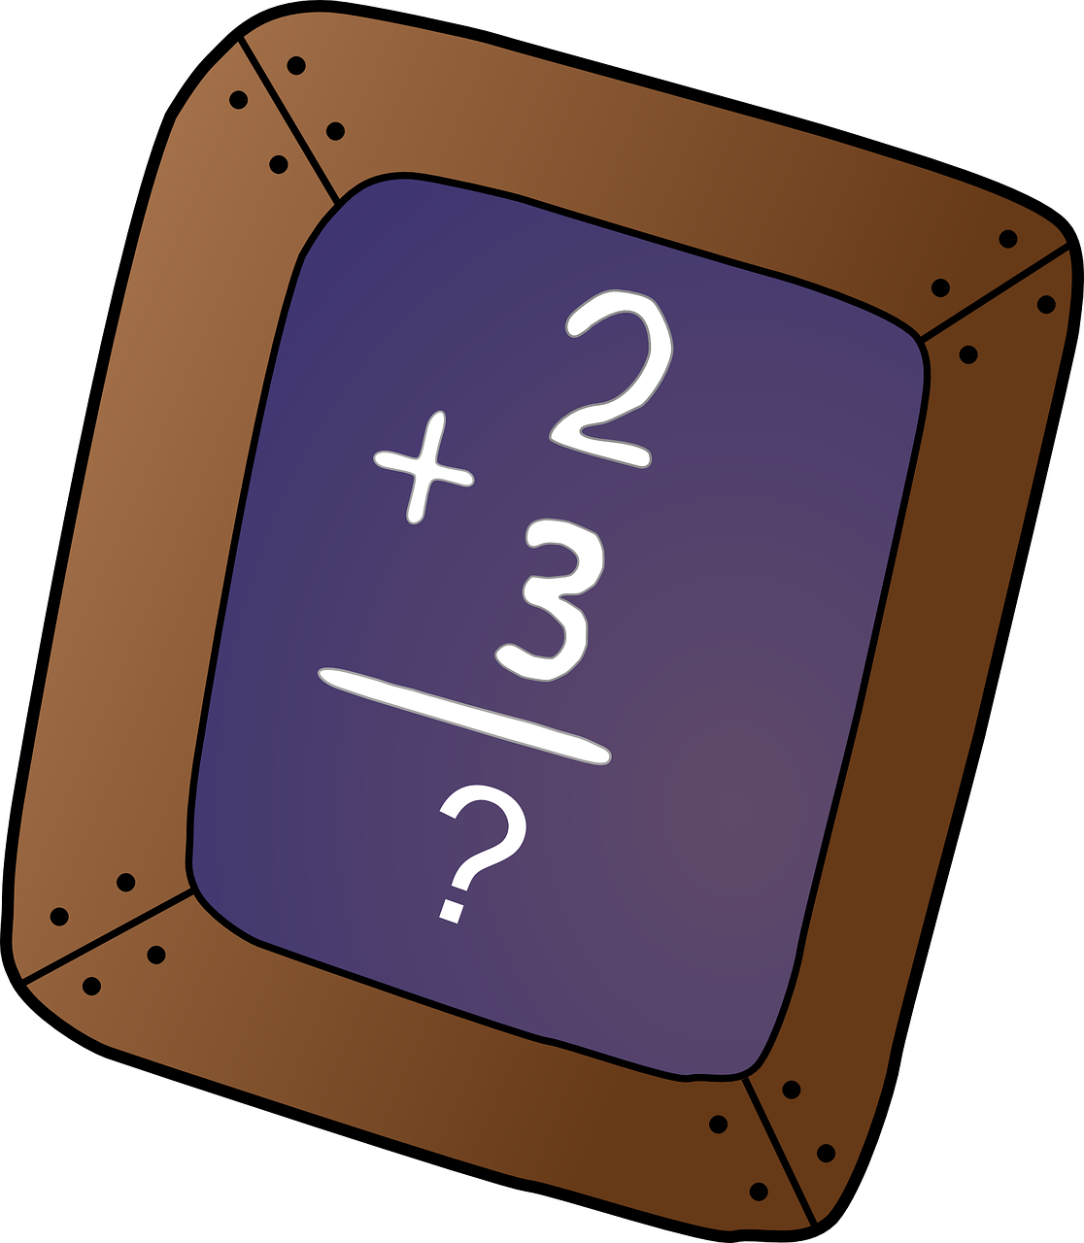 Multiplication clipart sum. Horseshoes math for love